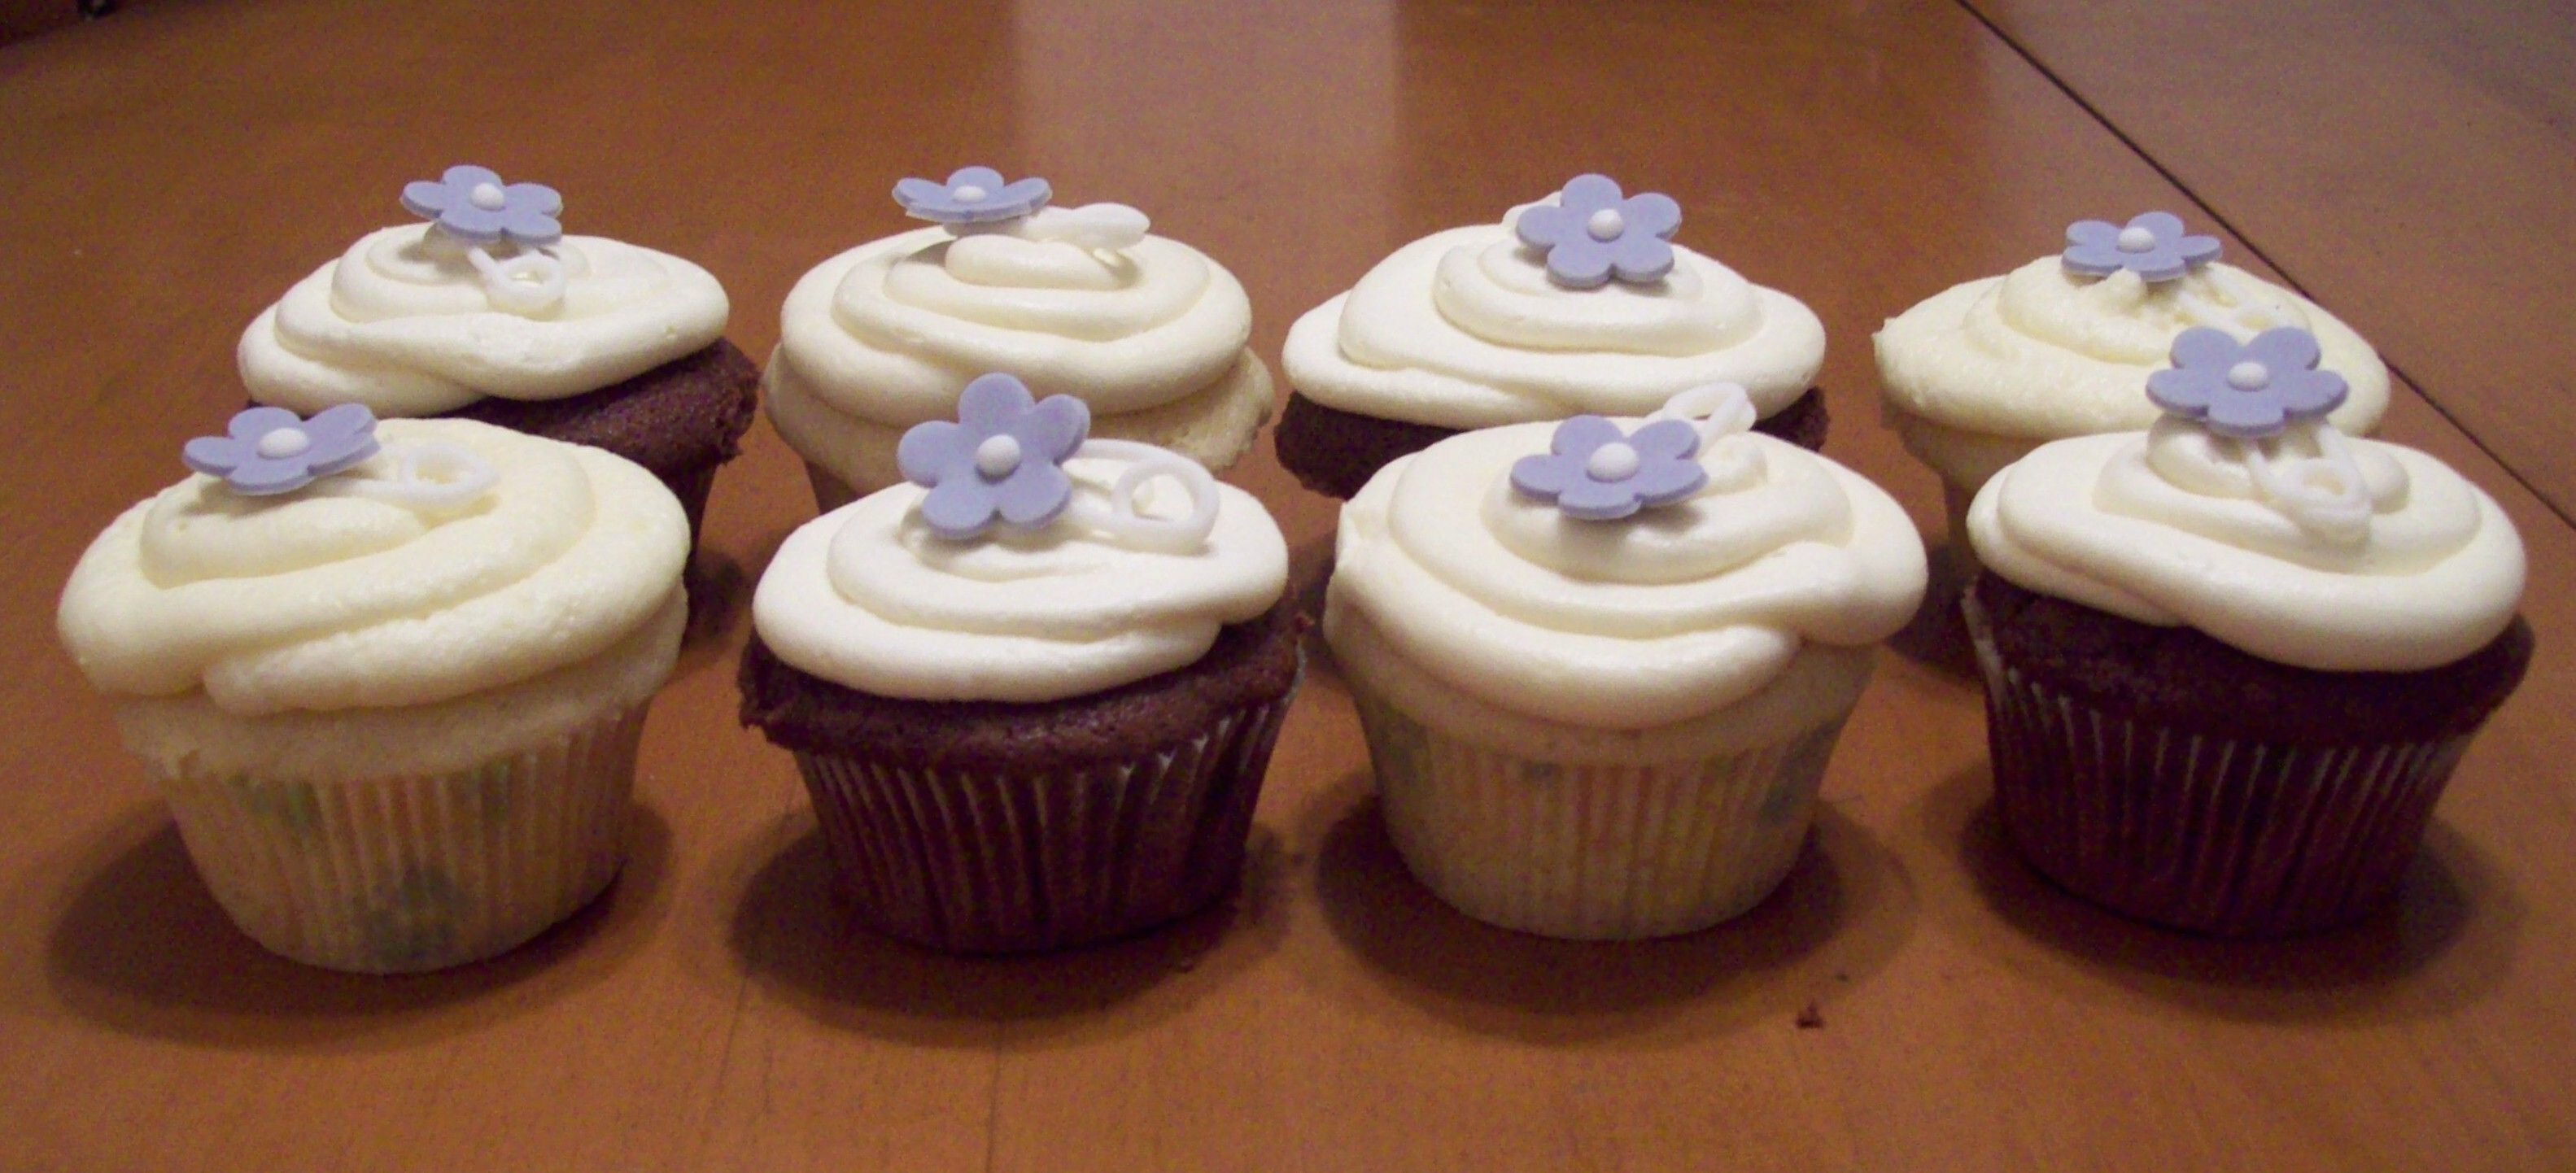 Vanilla and Chocolate cupcakes with Fondant Diaper Pins.